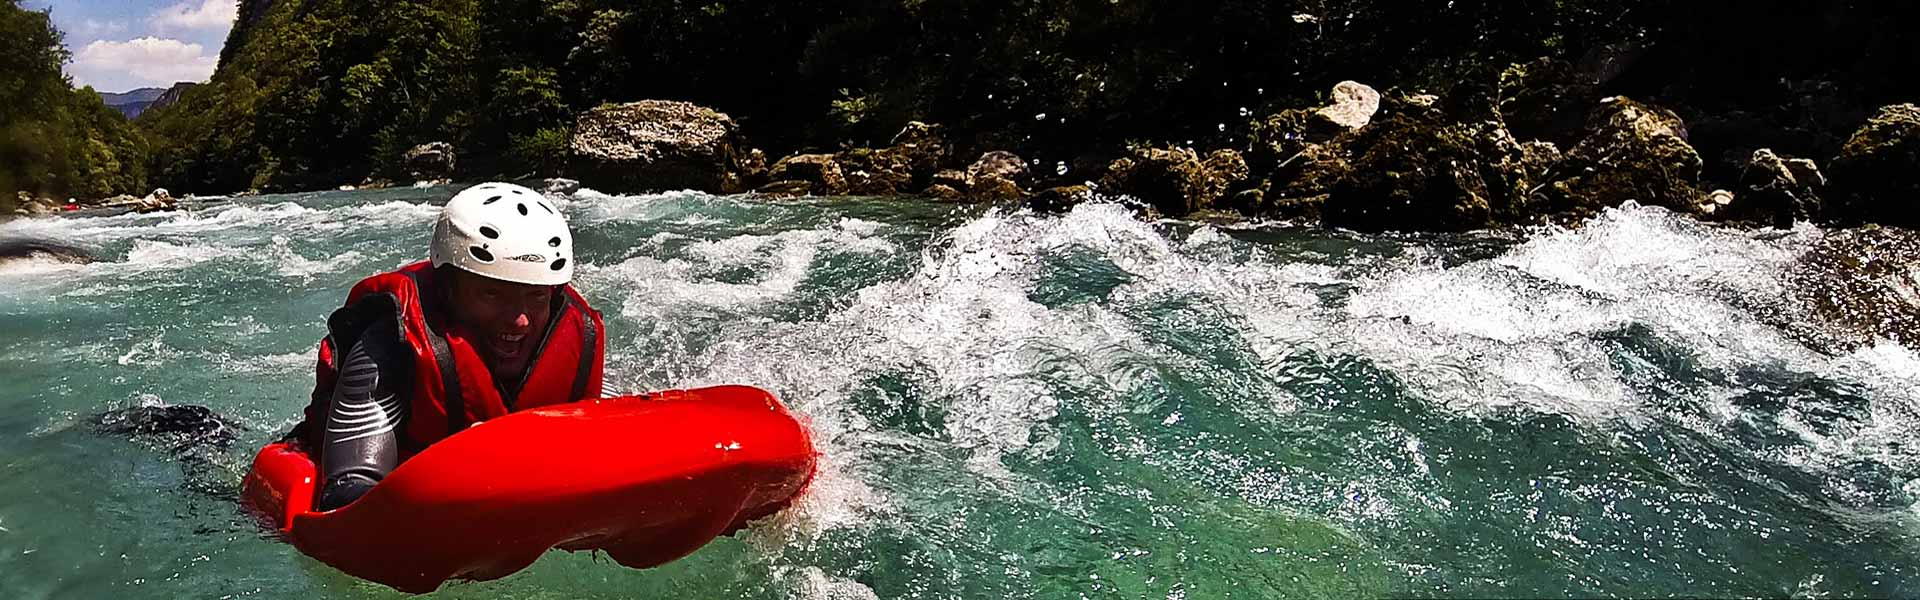 "<h2 style=""color: #FFFFFF;"">Hidrospeed</h2> <p>If you're looking for the most exiting challenges, Hydrospeed gives you the opportunity to get into the river.<br> An exhilarating and adrenalin activity for the bravest. <br /></p>"